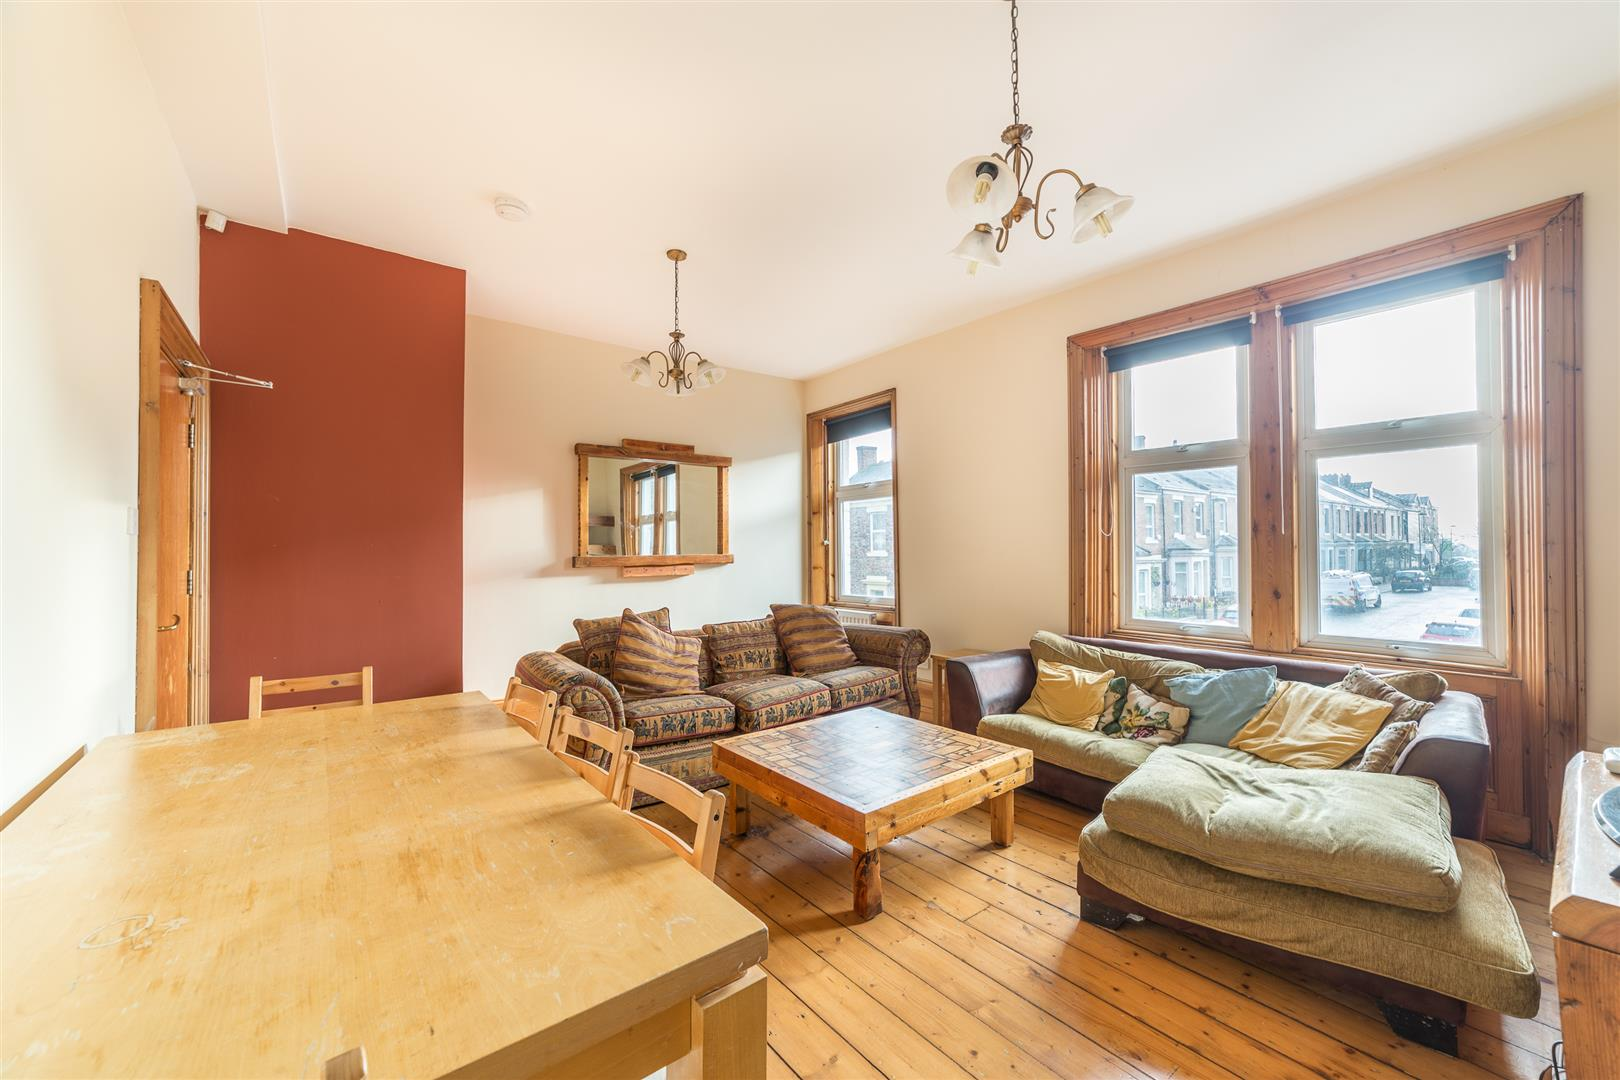 5 bed terraced house to rent in Newcastle Upon Tyne, NE4 5NL  - Property Image 1